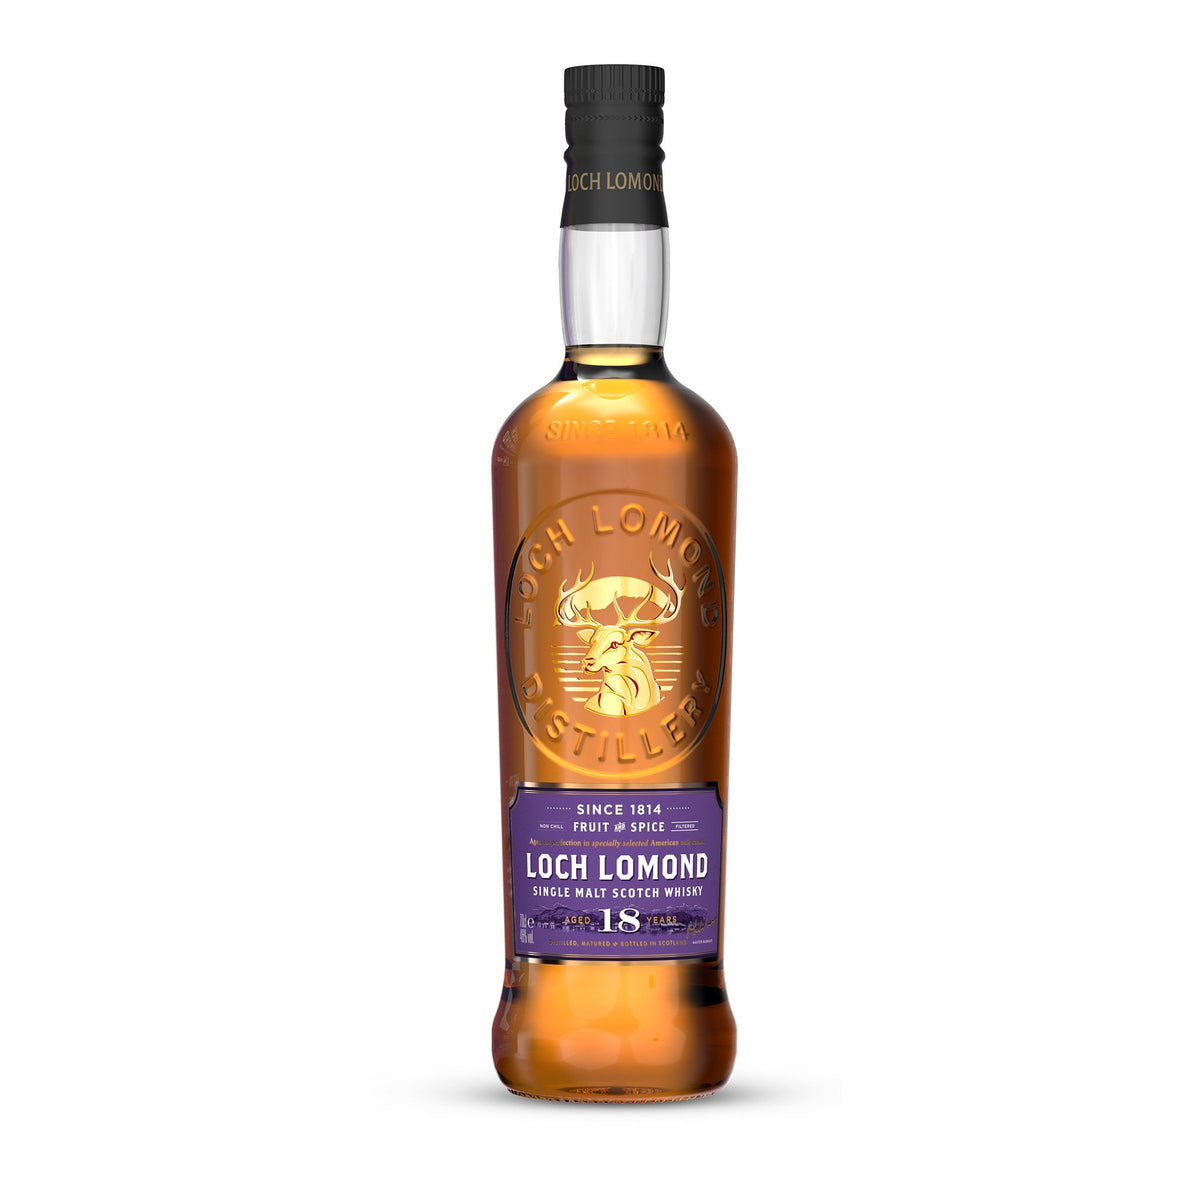 Loch Lomond 14 Year Old Single Malt Whisky Bottle